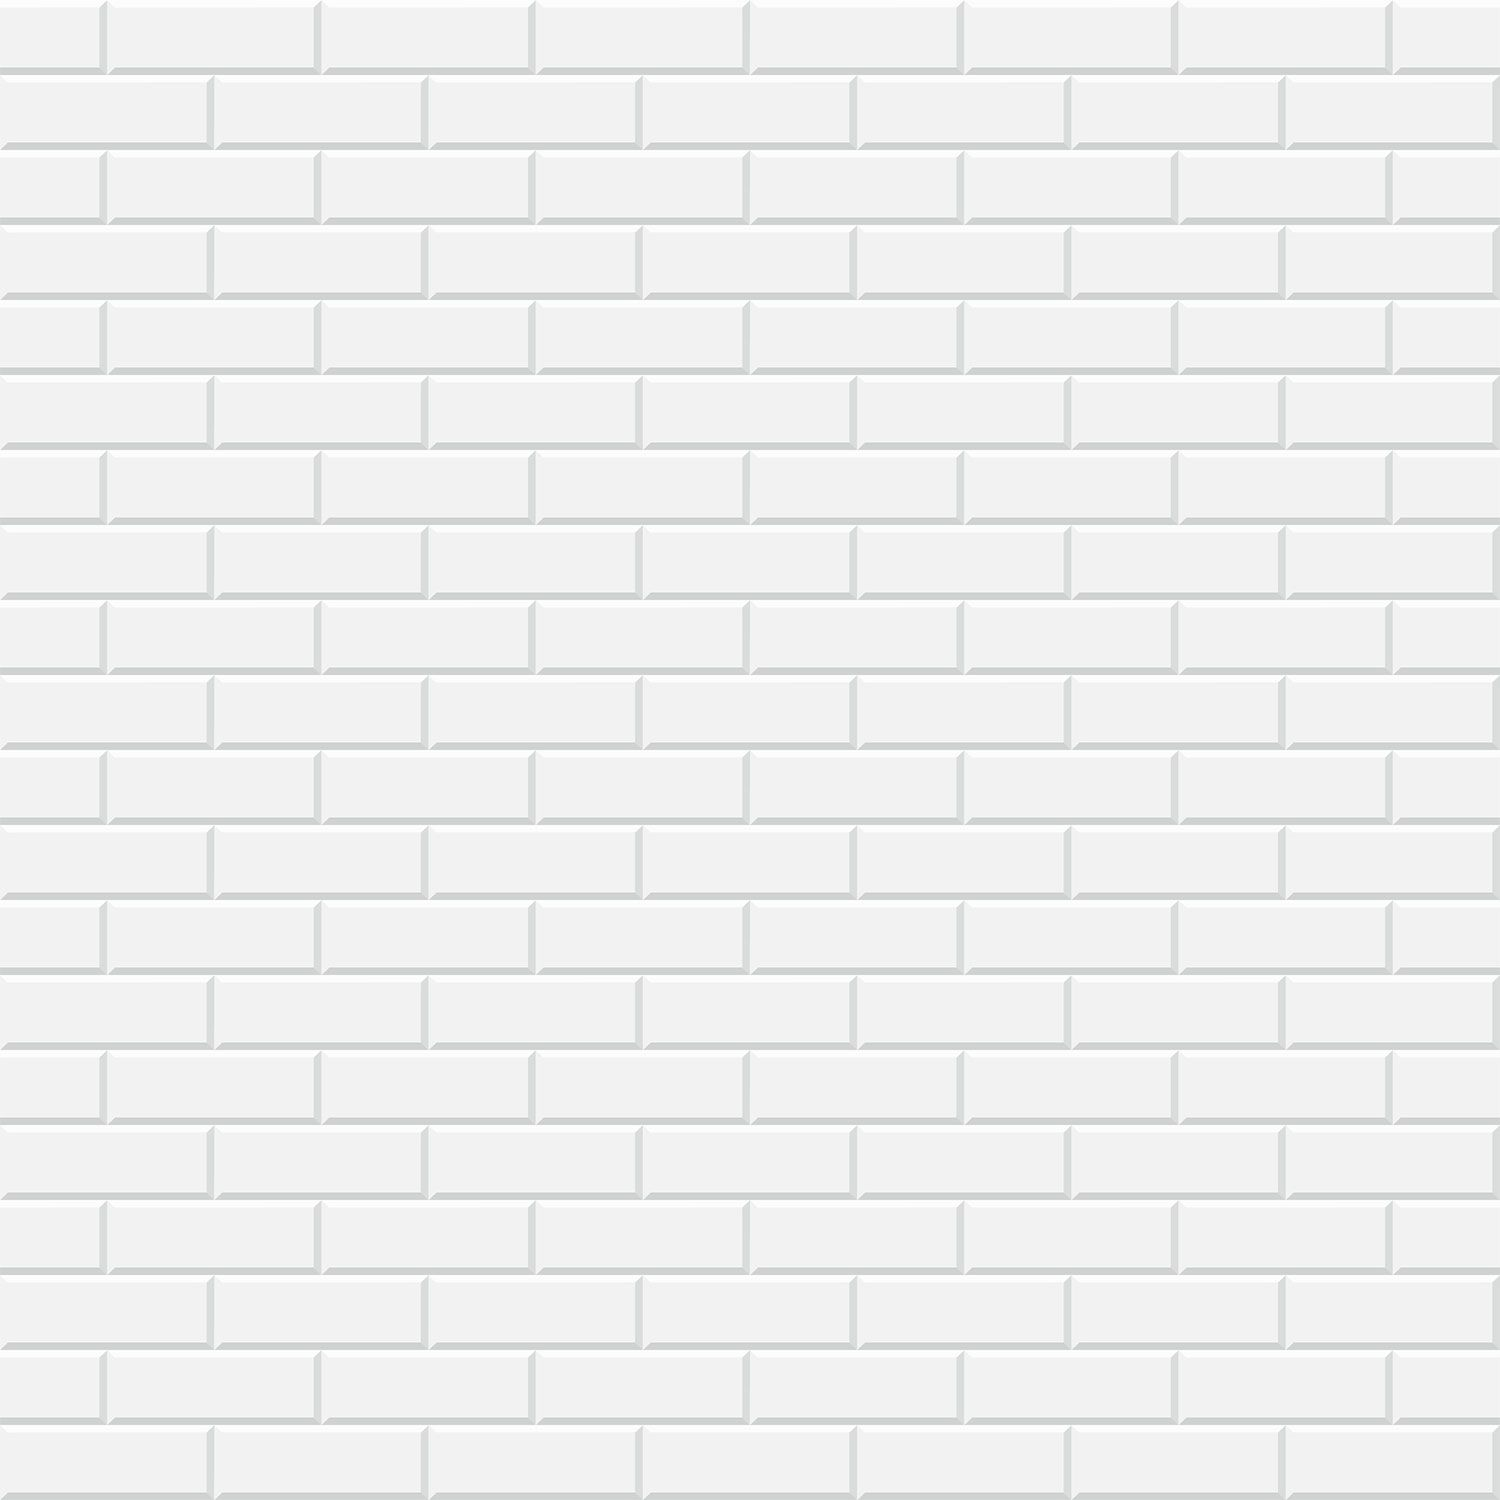 Choose White Bricks Vector Wallpaper To Create Fantastic Wall Decor In Your Room Or Browse Hundreds Of Other Wallpapers At Dinding Bata Batu Bata Dinding Batu